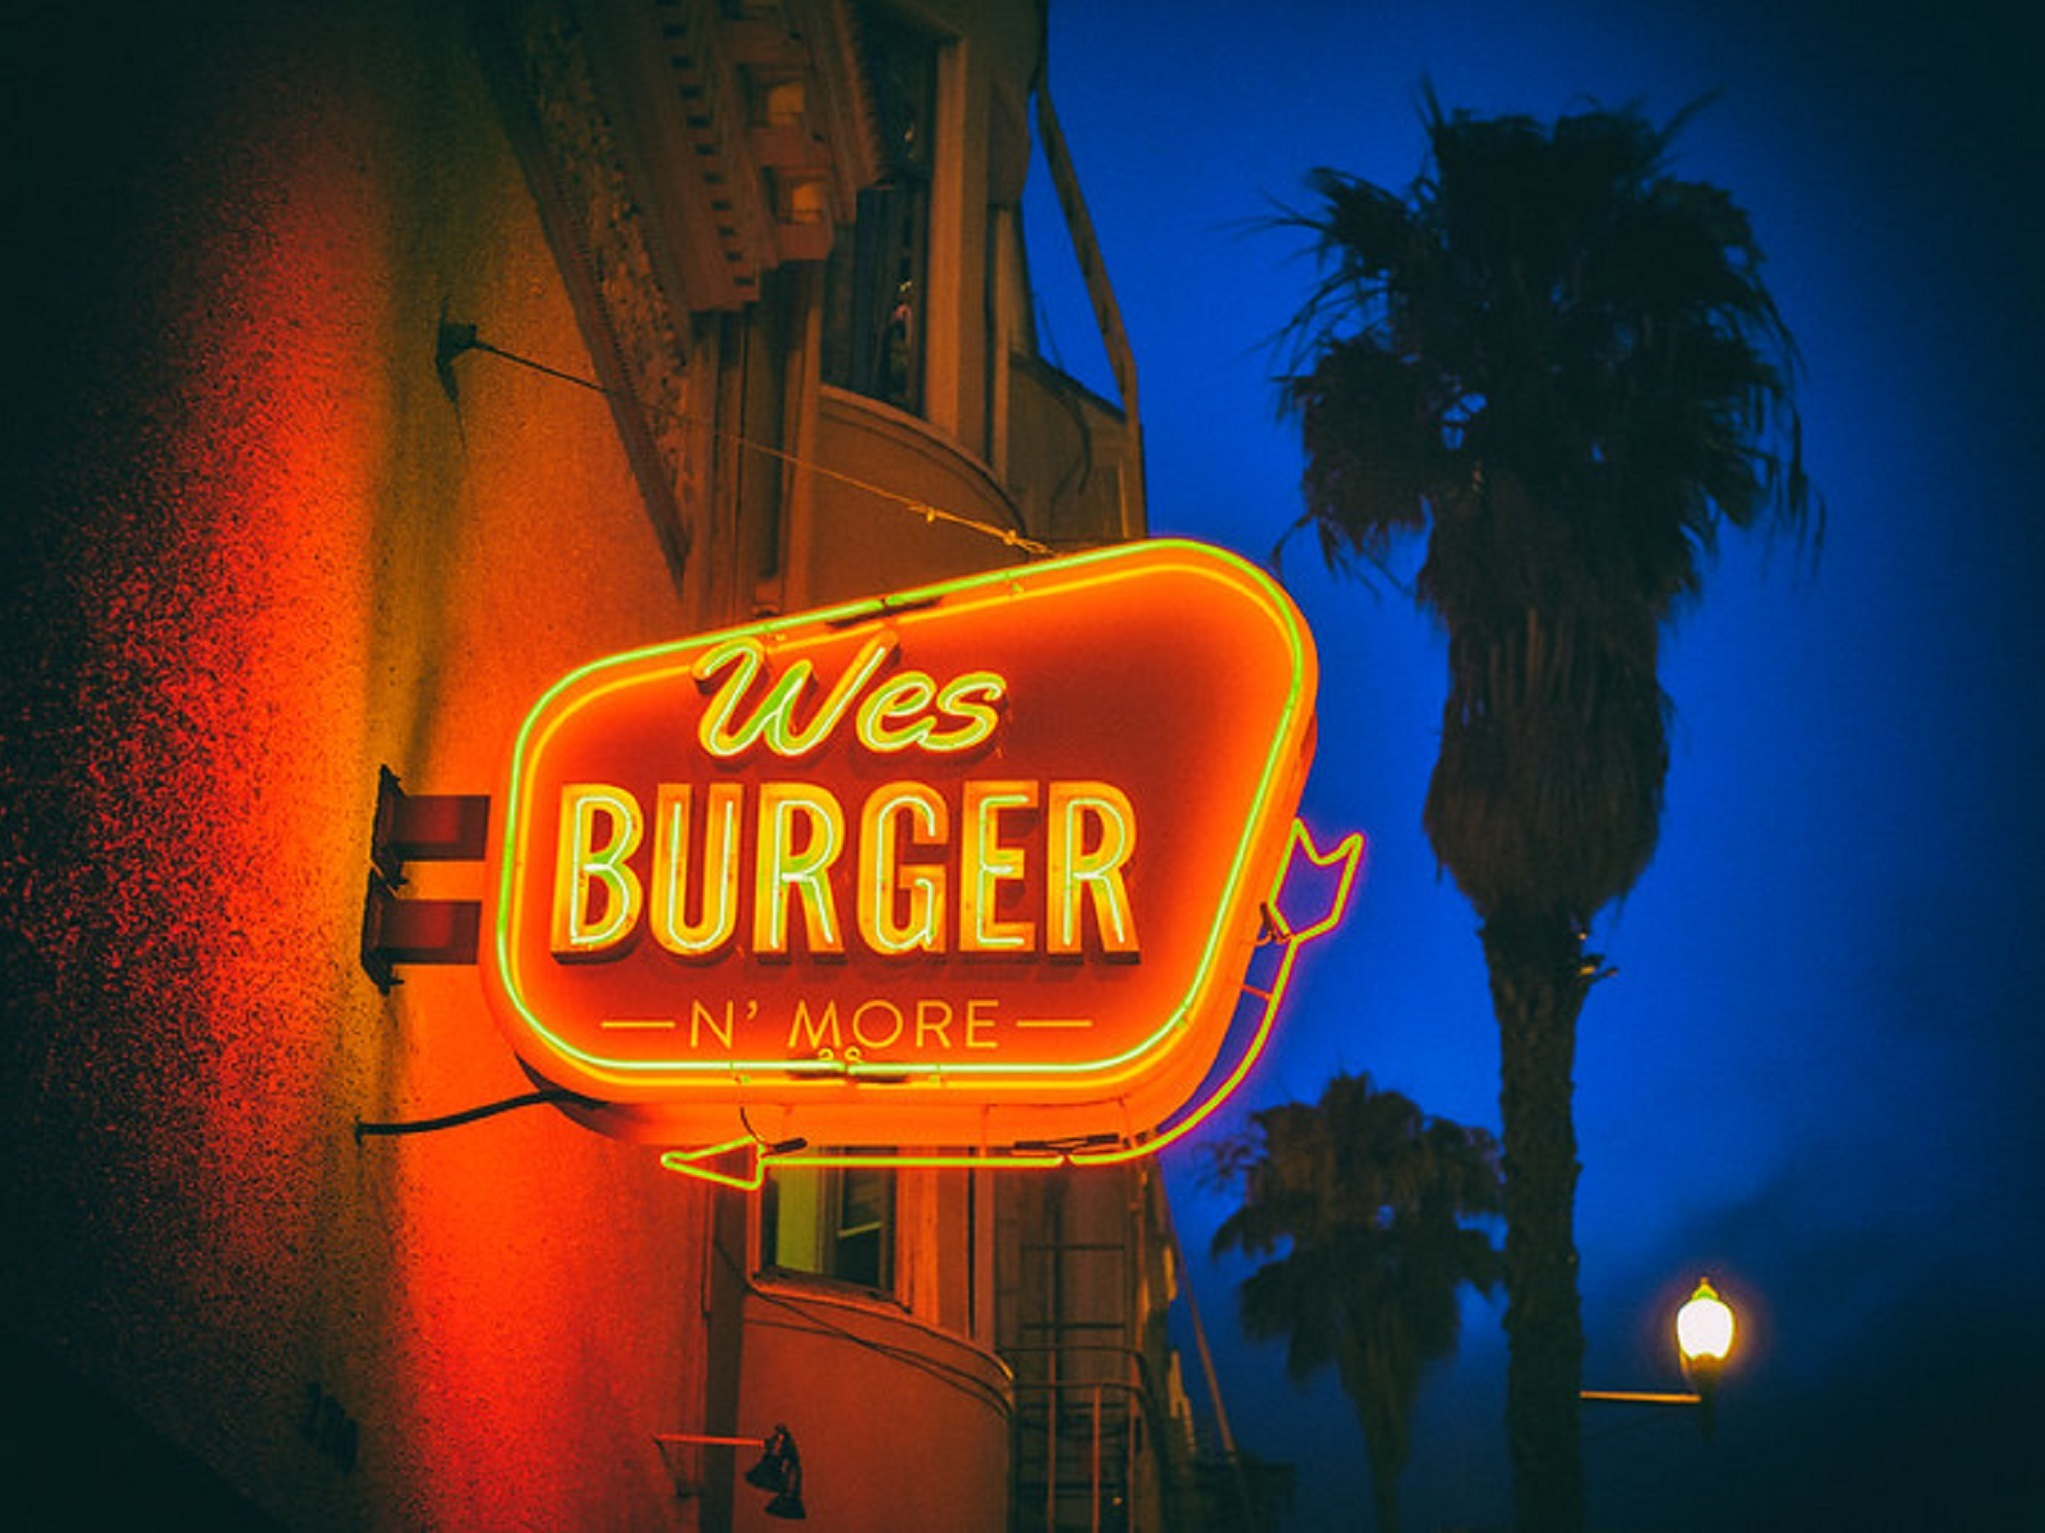 Wes Burger neon sign